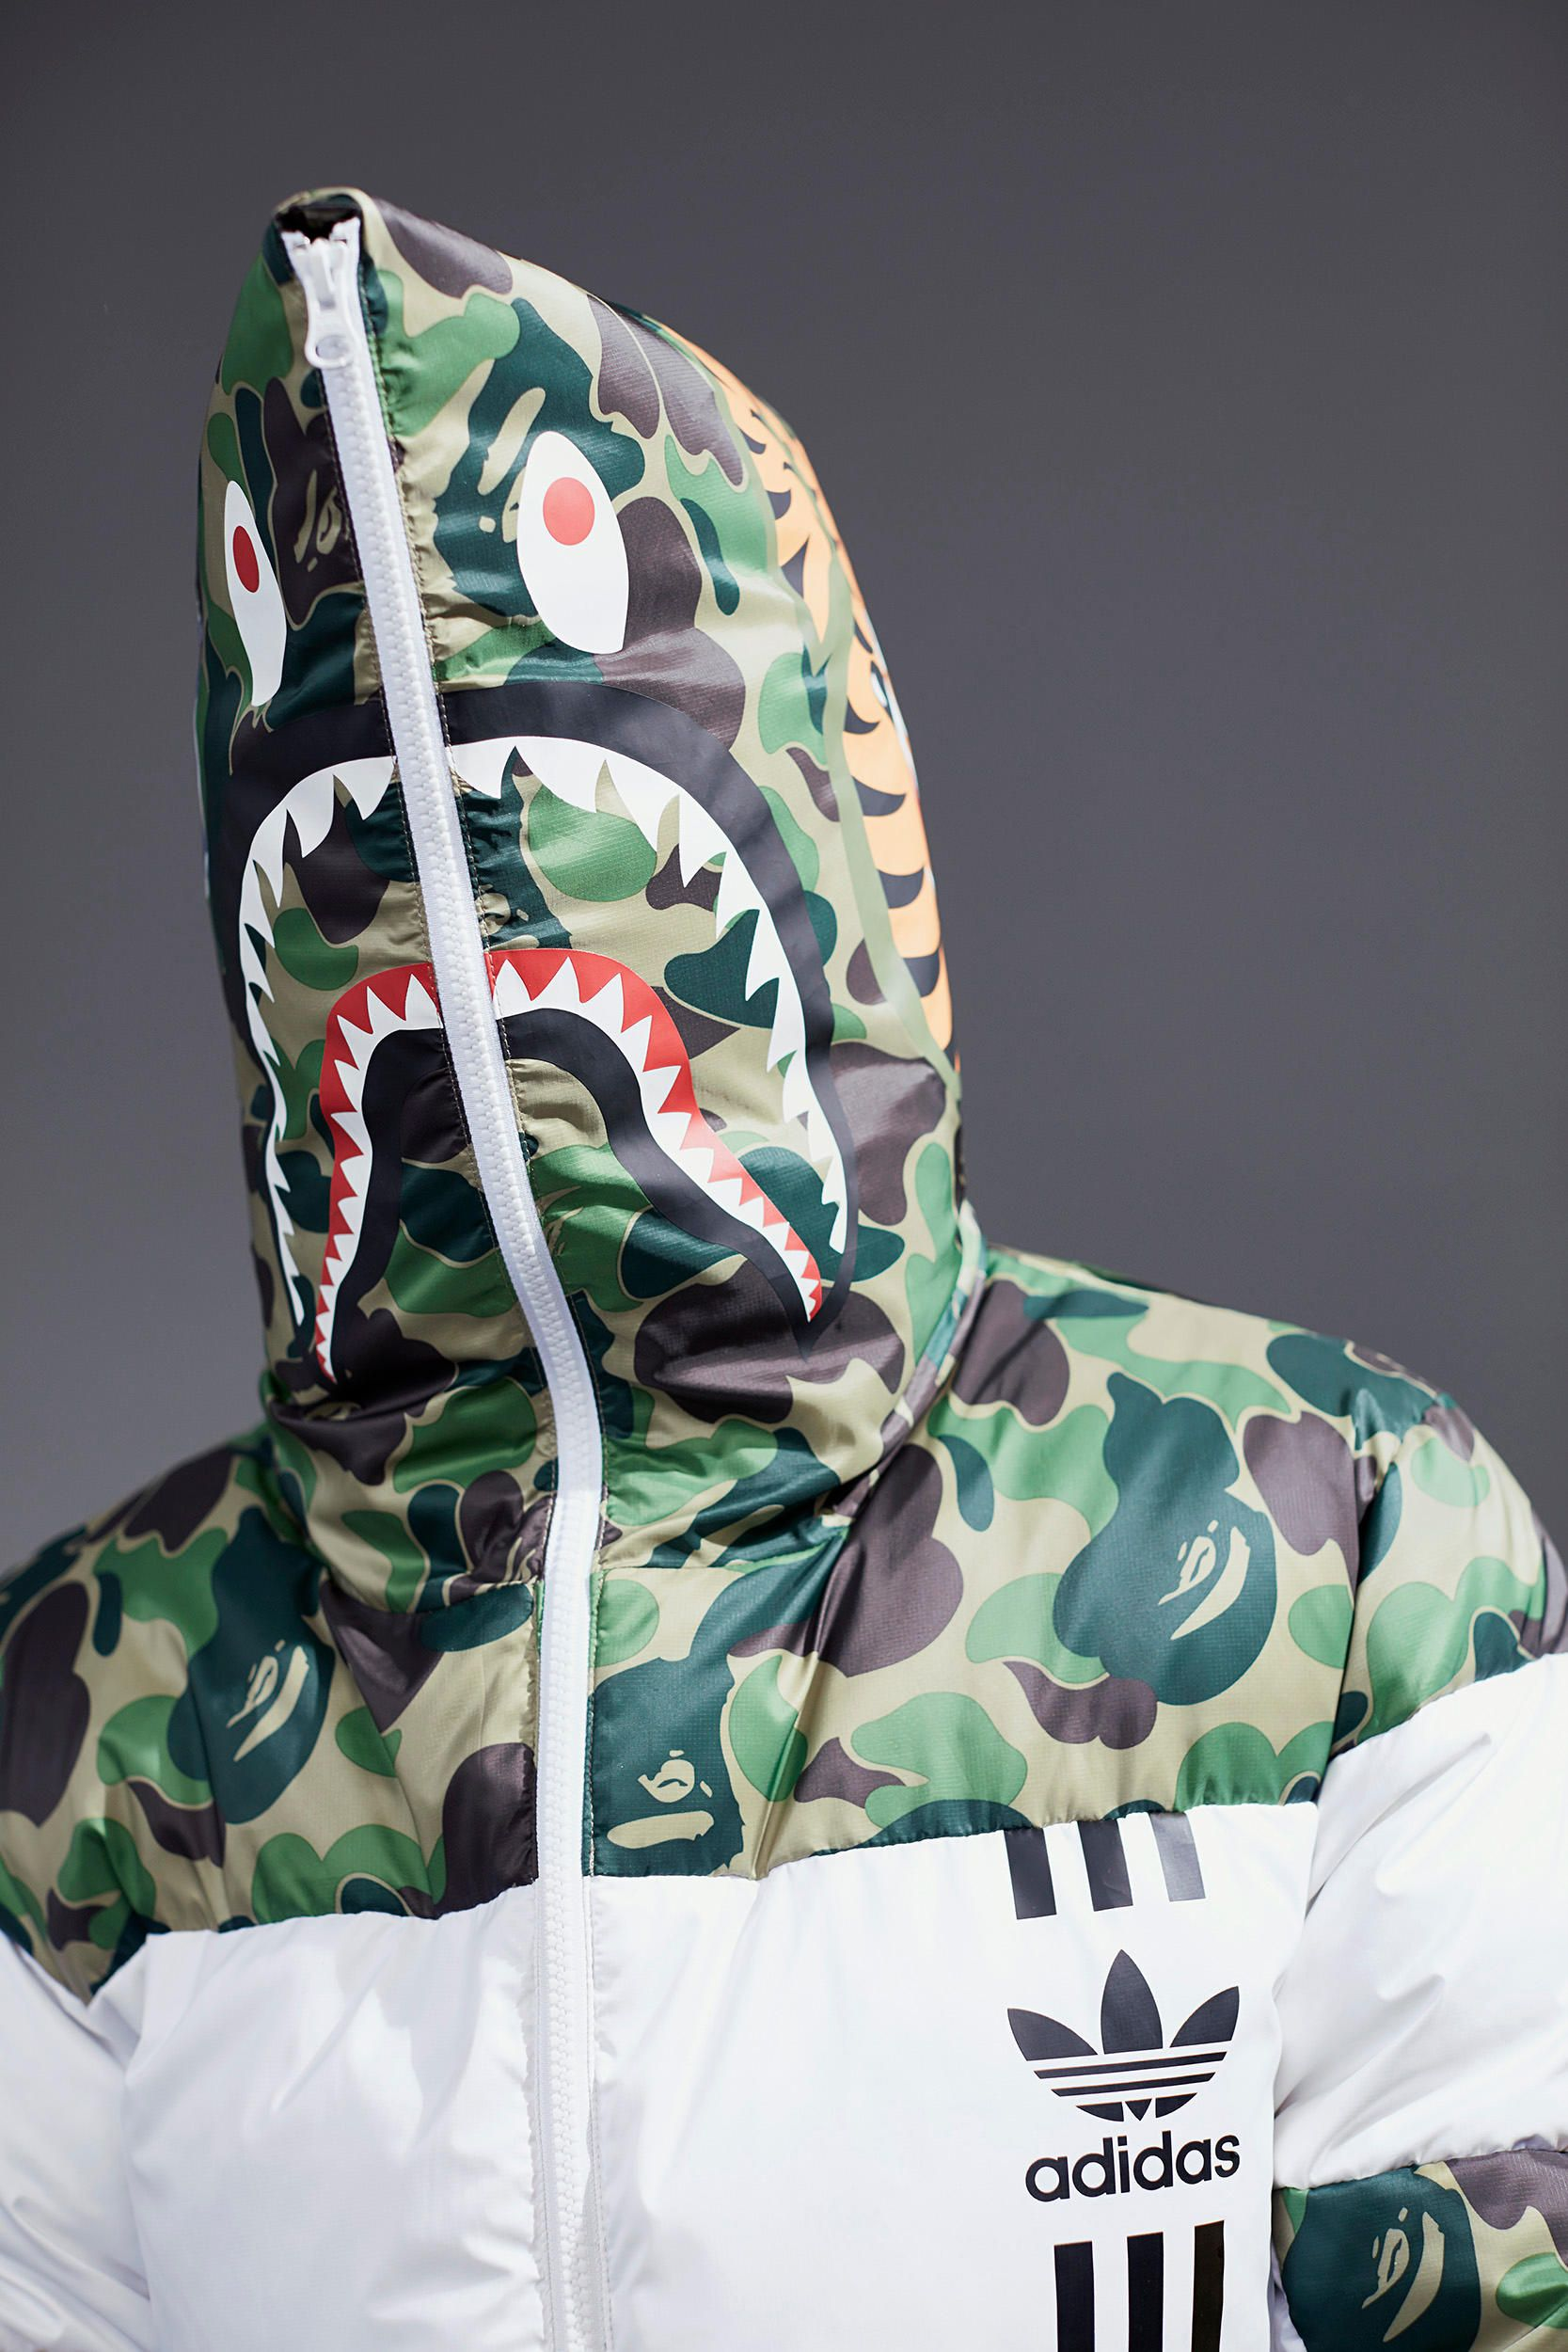 adidas Originals Unveils Fall Winter 2016 Collaboration With A BATHING APE  - Freshness Mag 78fc723640a2c